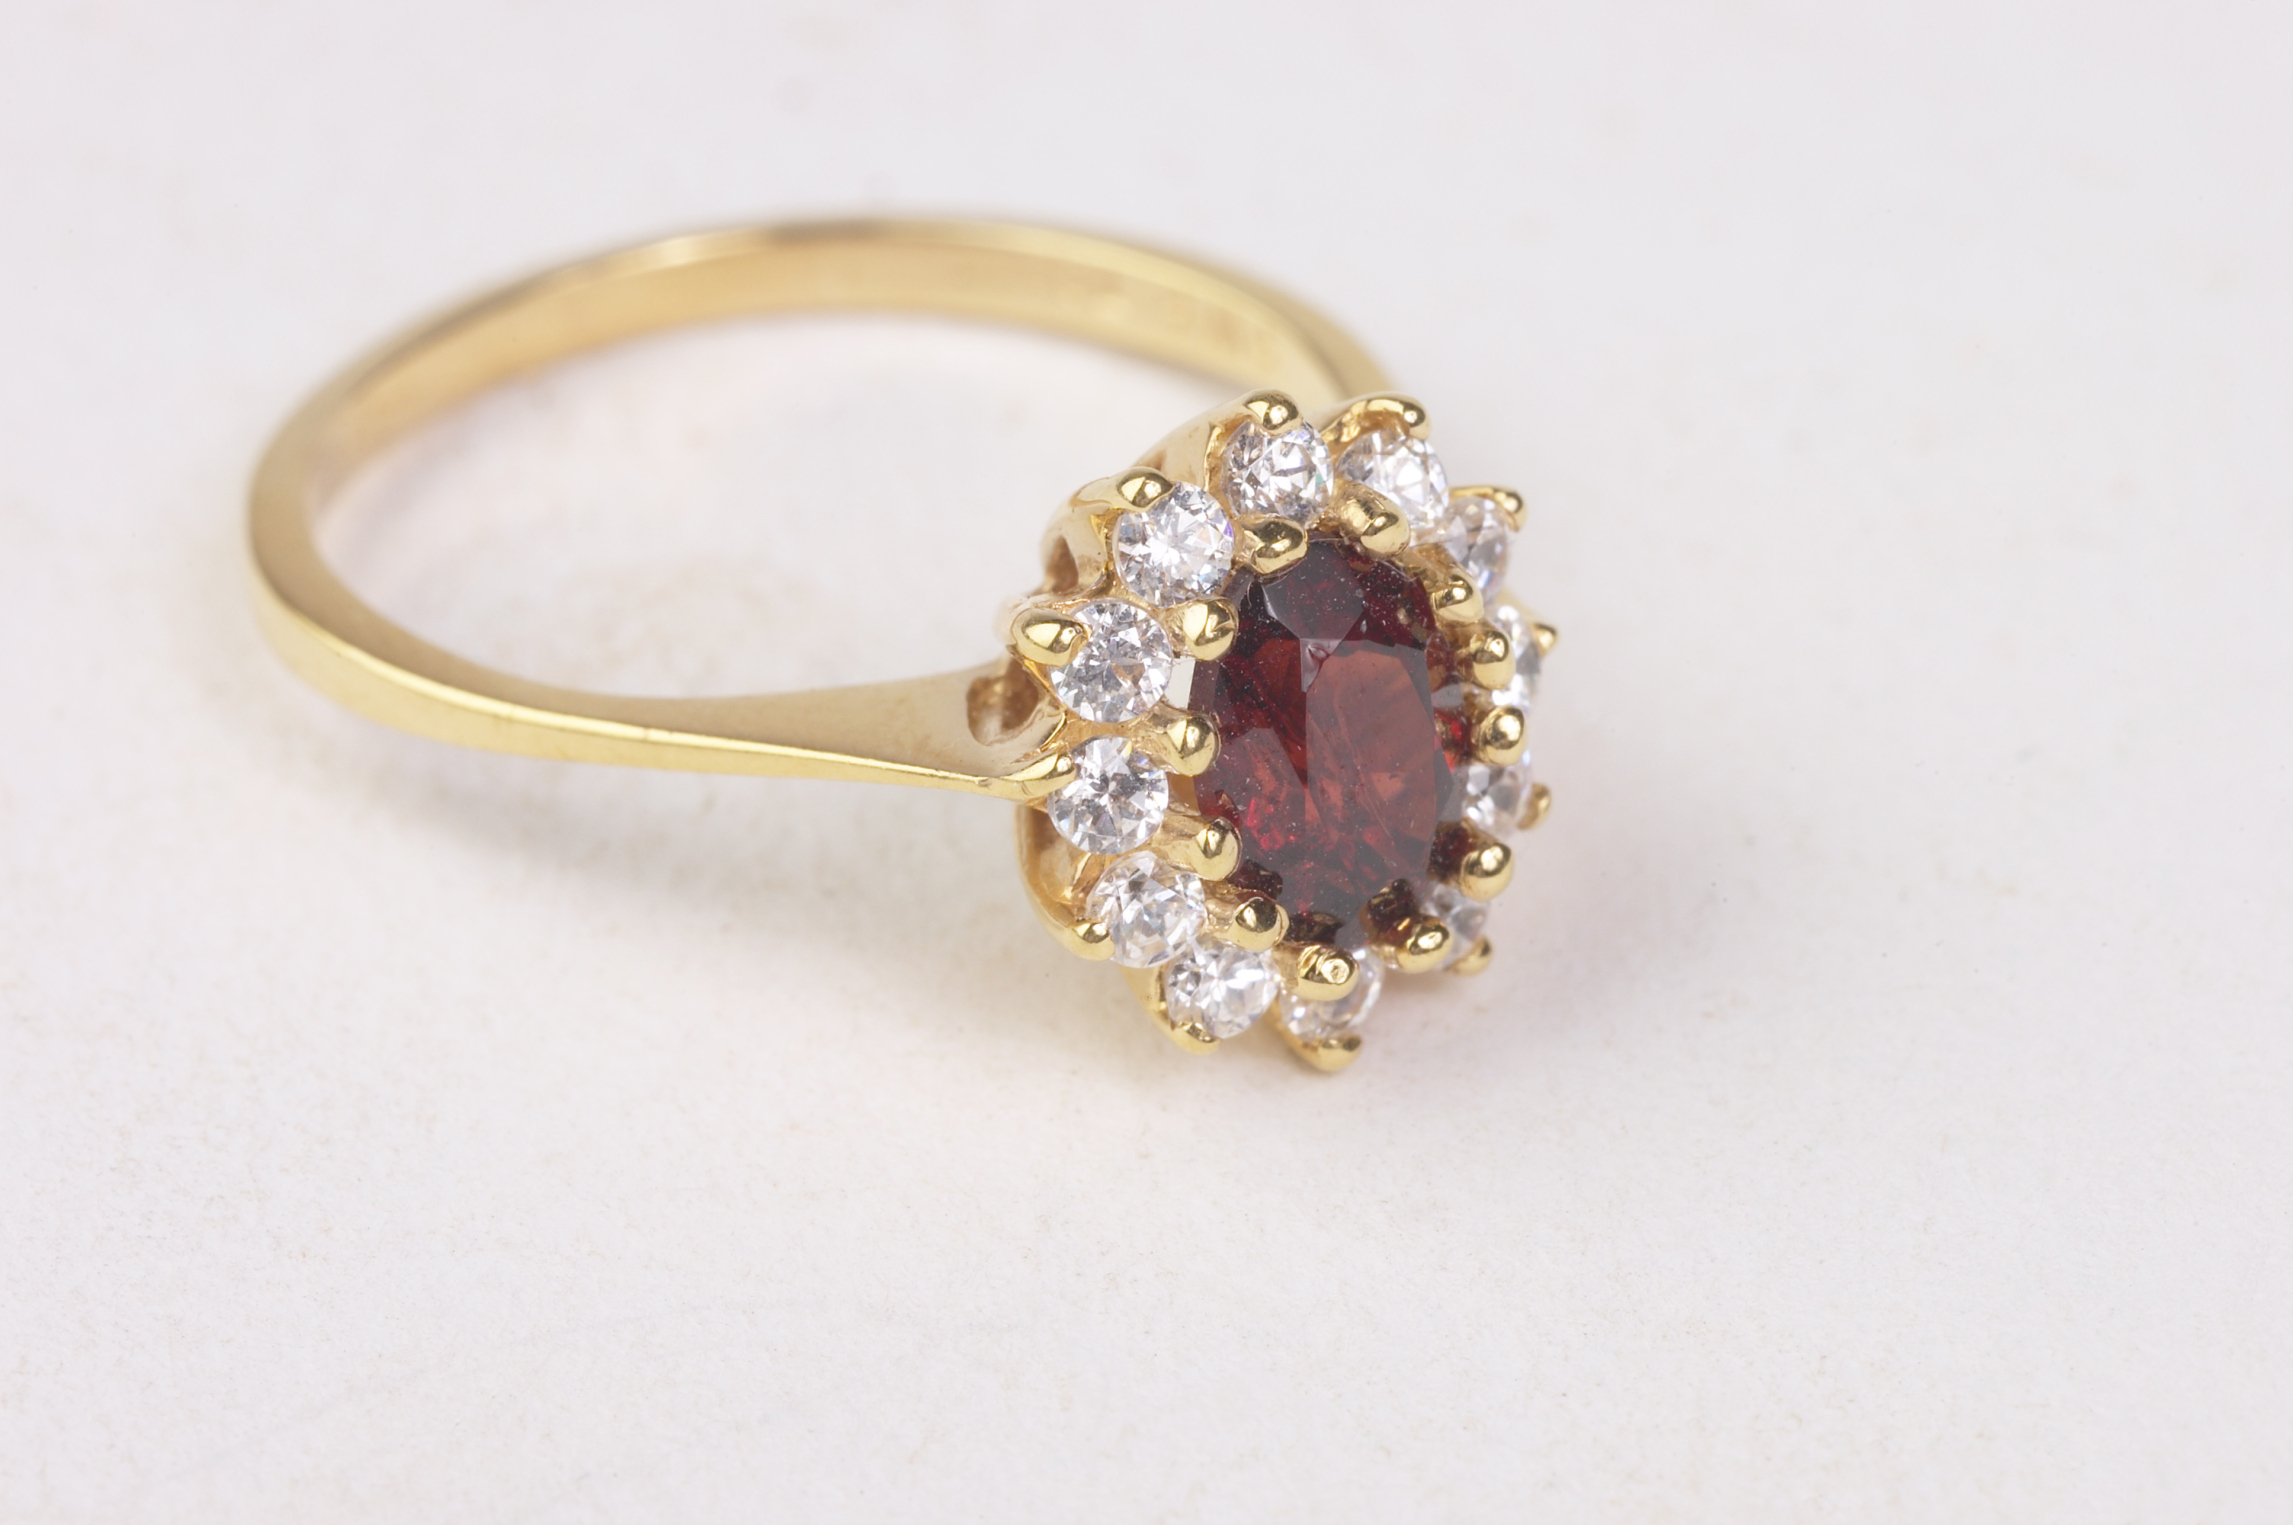 victorian style gemstone wedding stone exeter rings diamond ring syle product jewelers